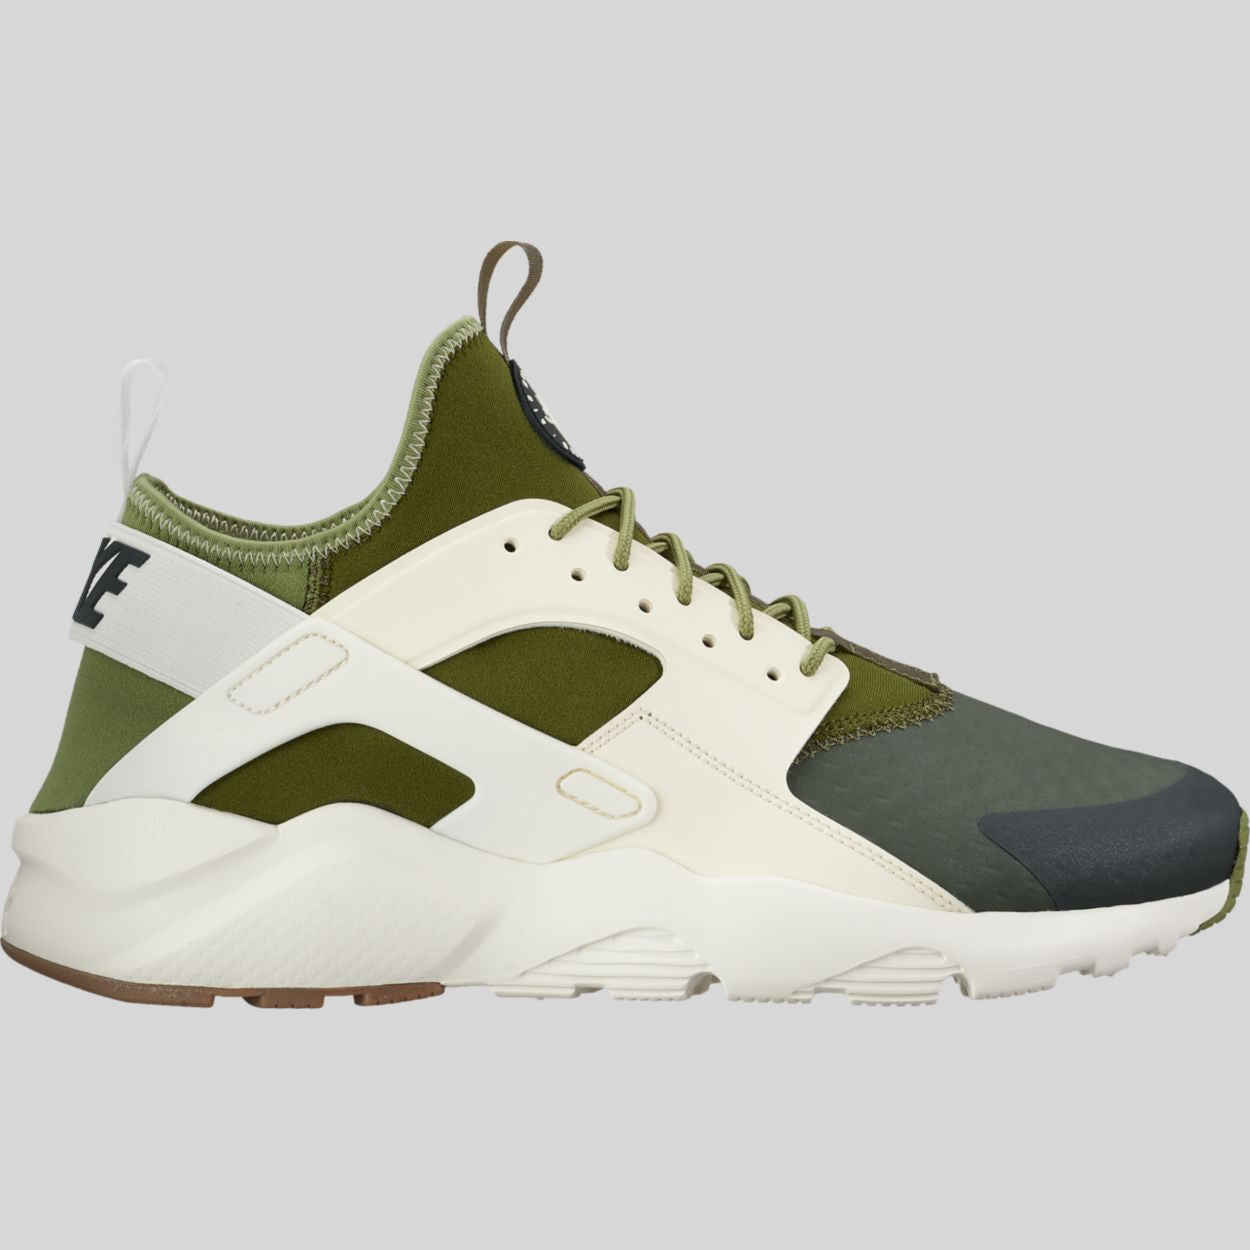 Nike Air Huarache Run Ultra SE Palm Green Sail Legion Green (875841-300) 1e4df9d8cf